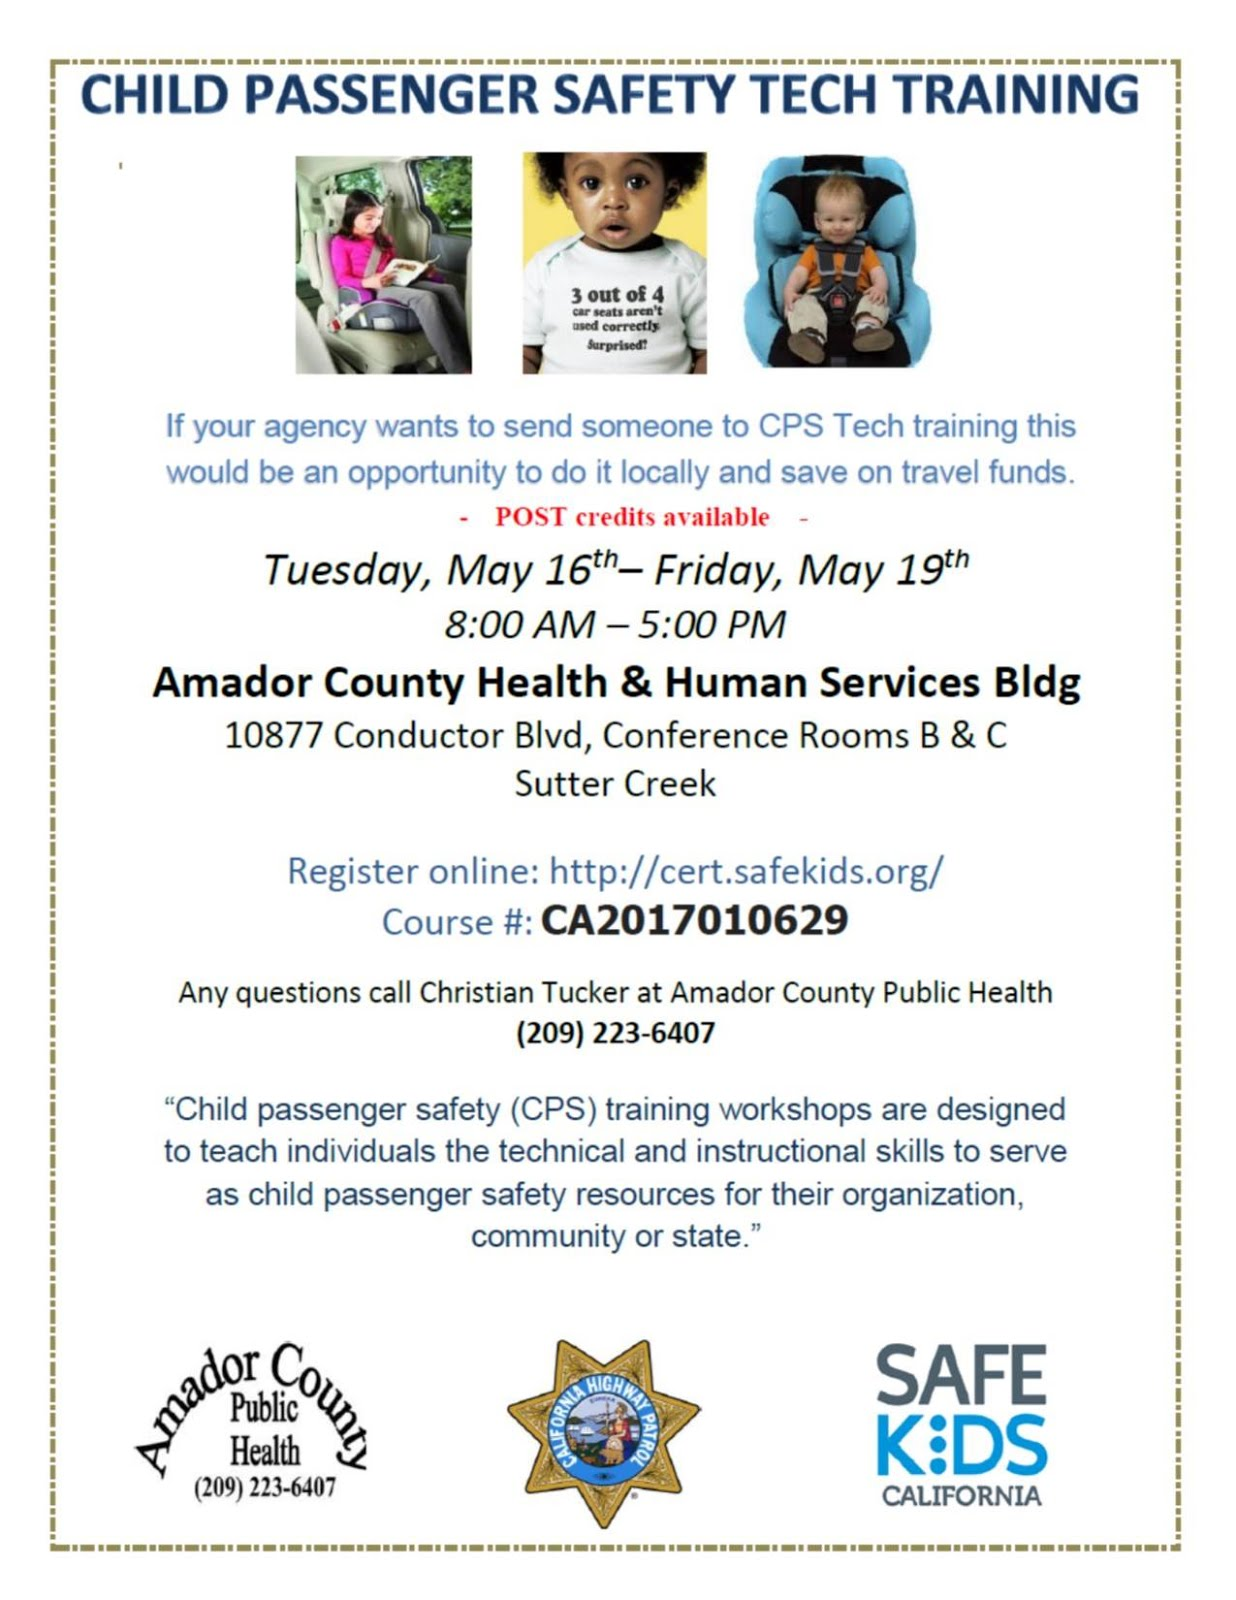 Child Passenger Safety Tech Training - May 16-19